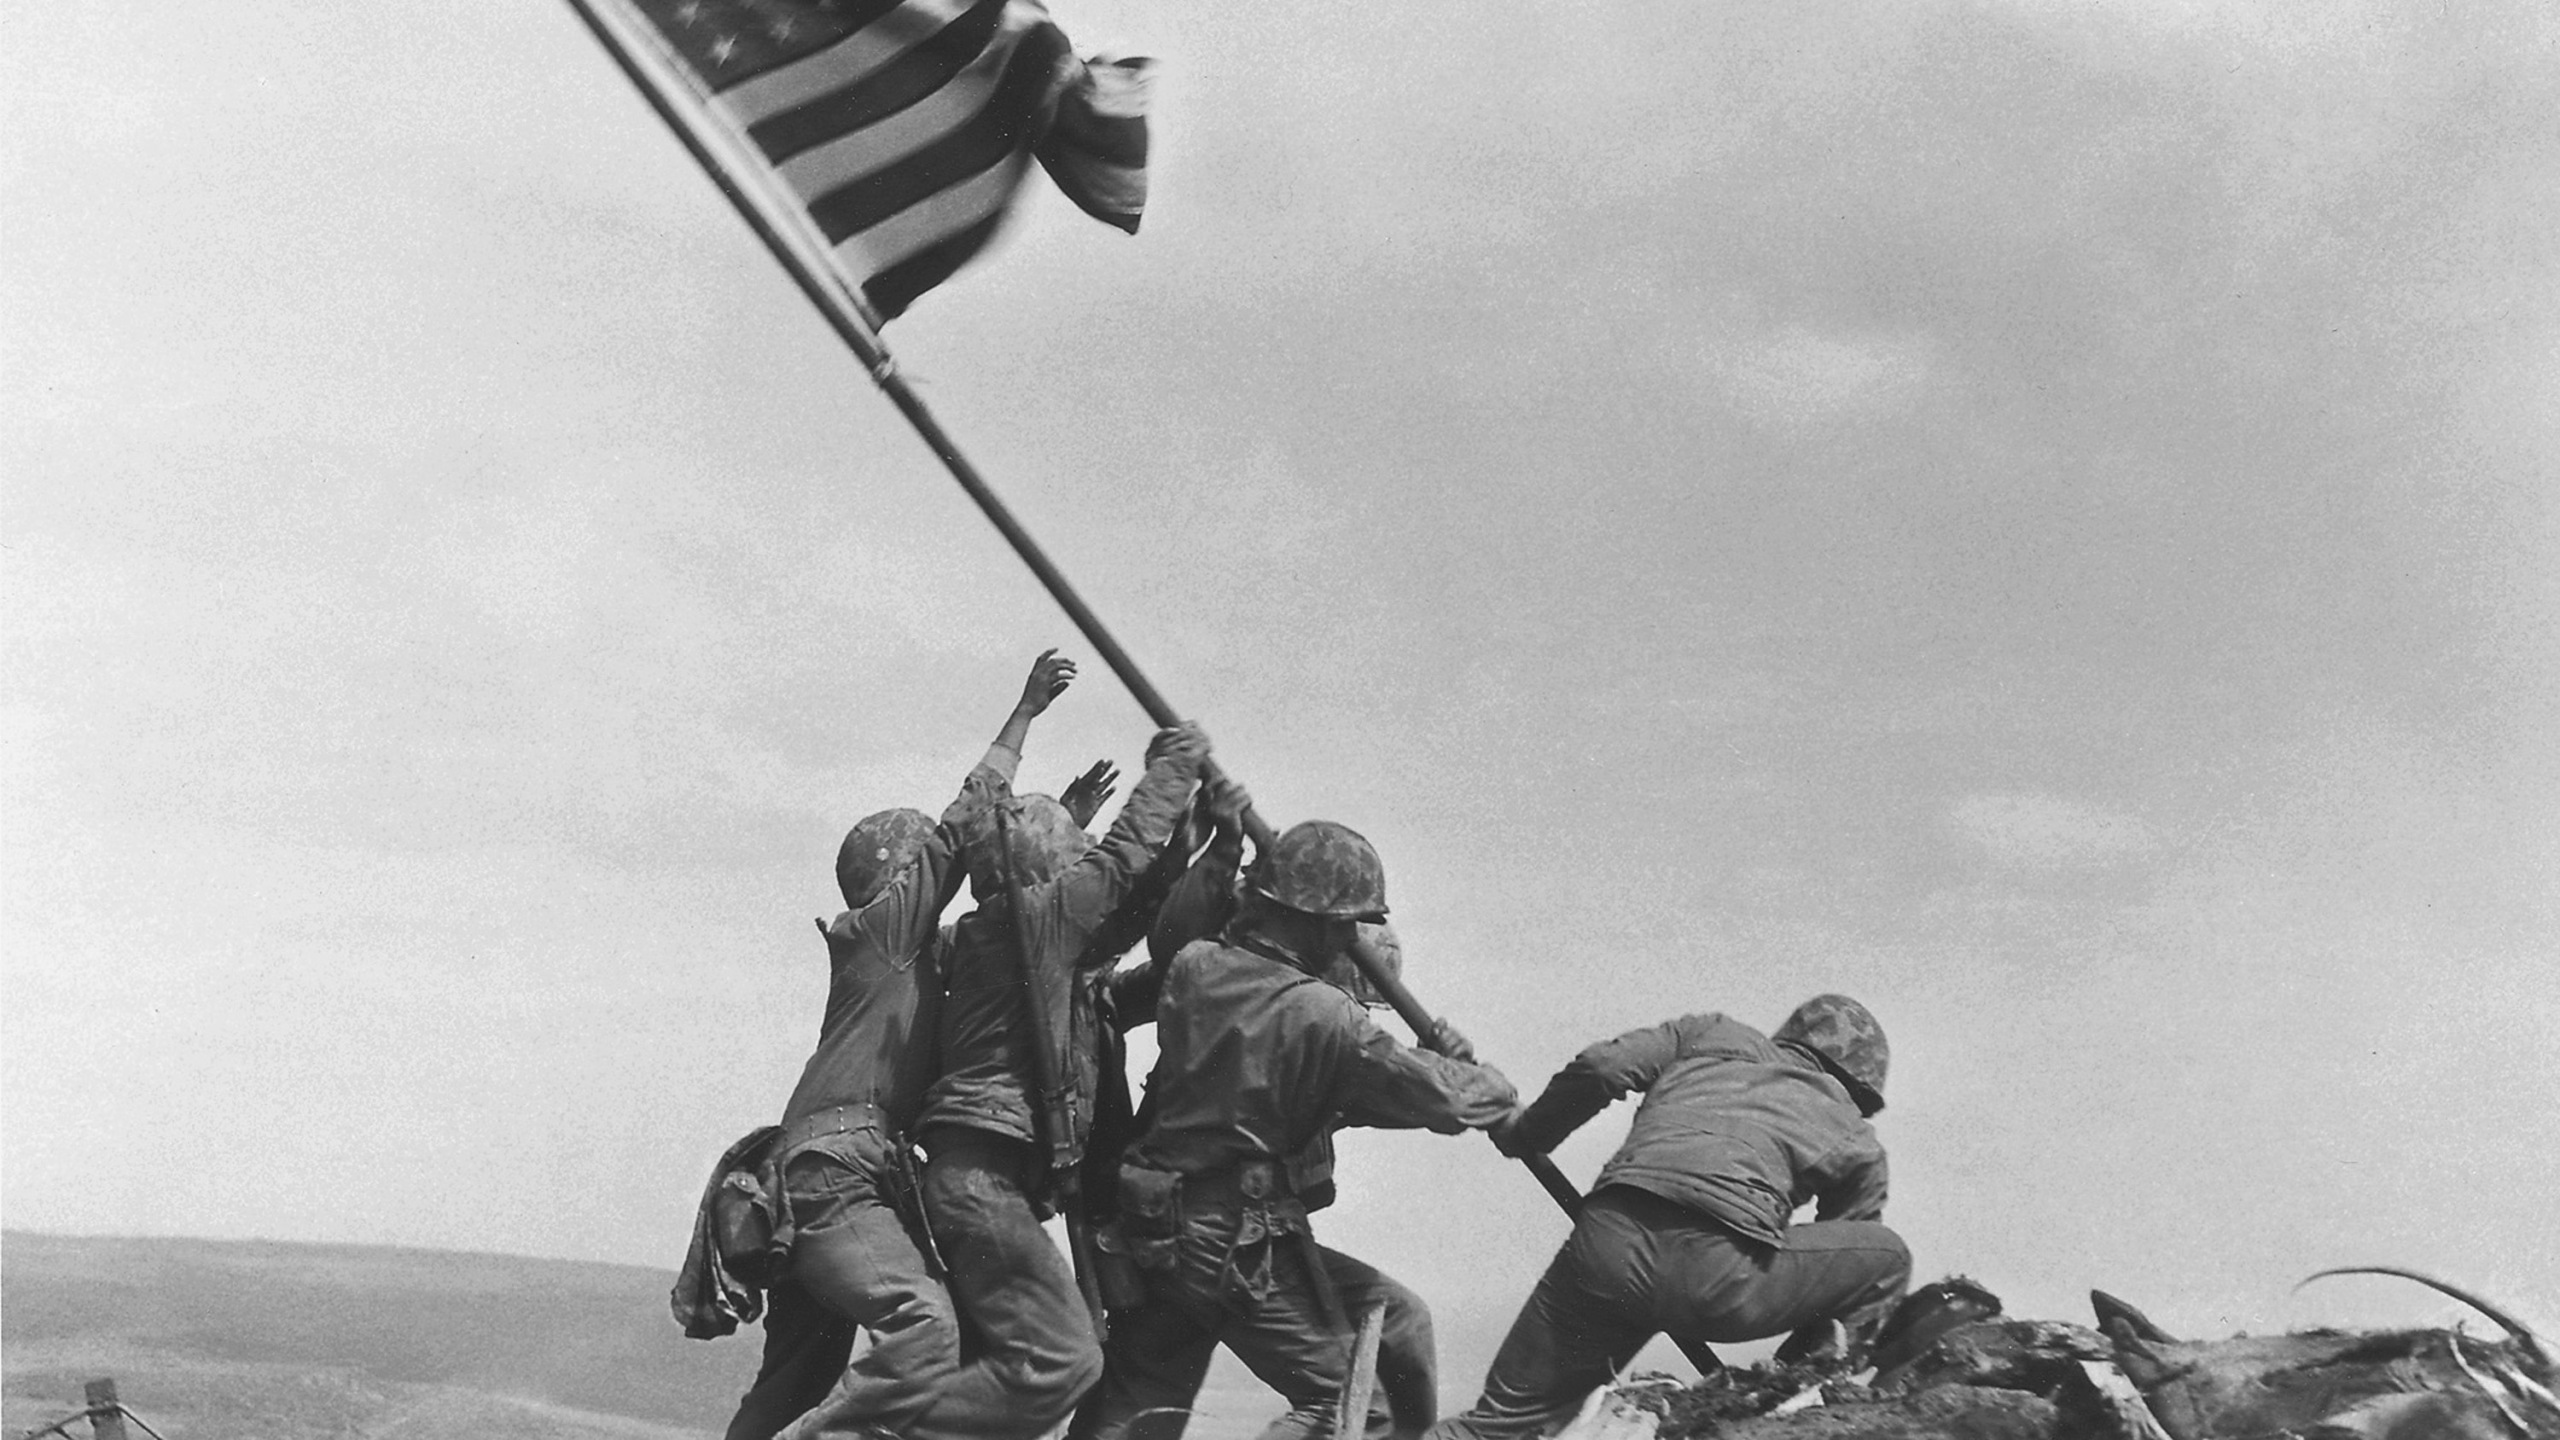 75 years ago today, US Marines raised the American flag over Iwo Jima